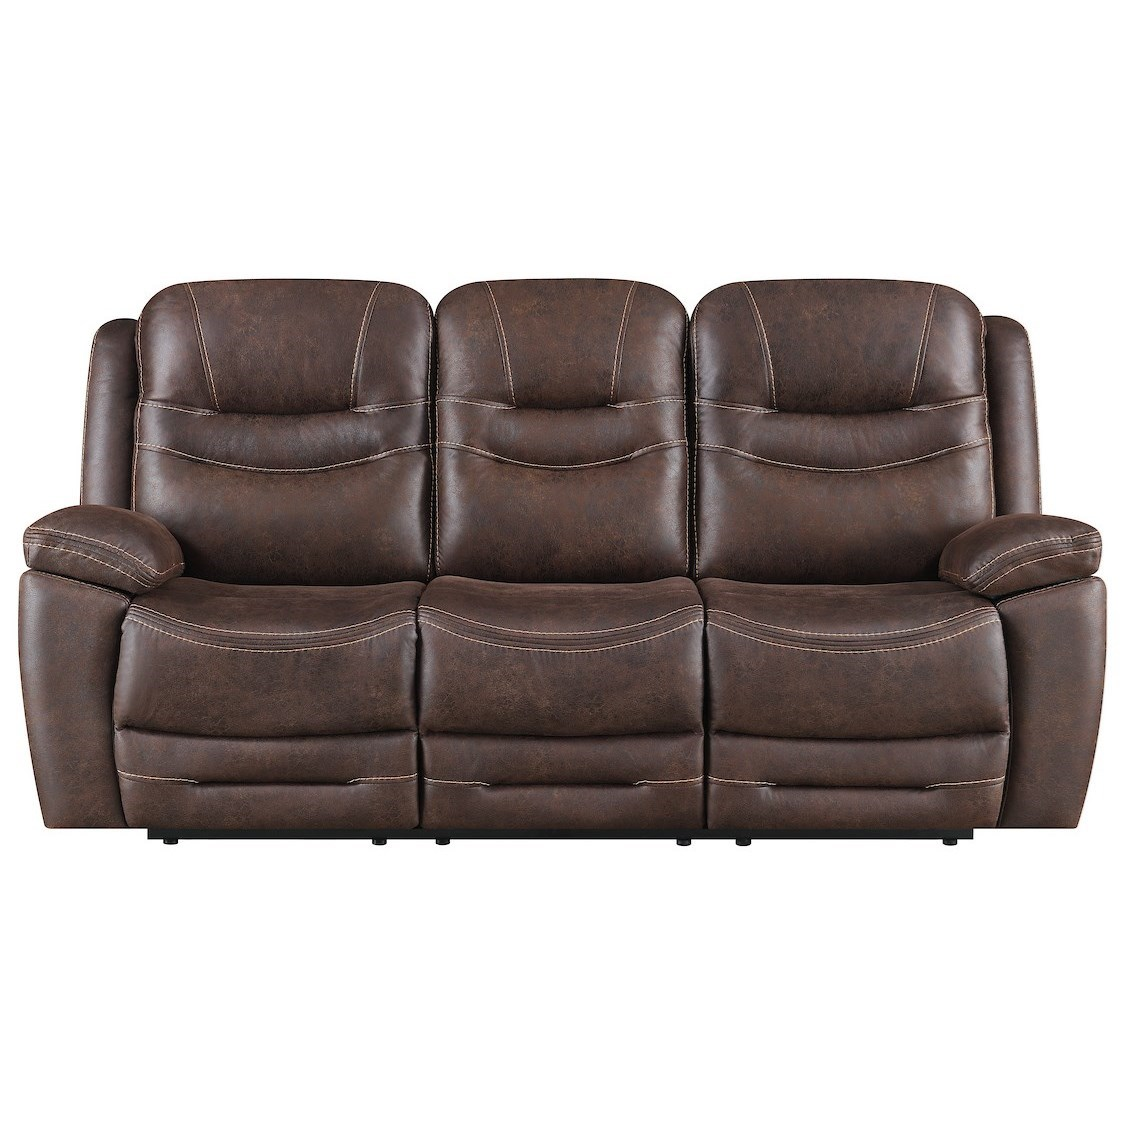 Turismo Power Reclining Sofa w/ Drop Down Table at Walker's Furniture